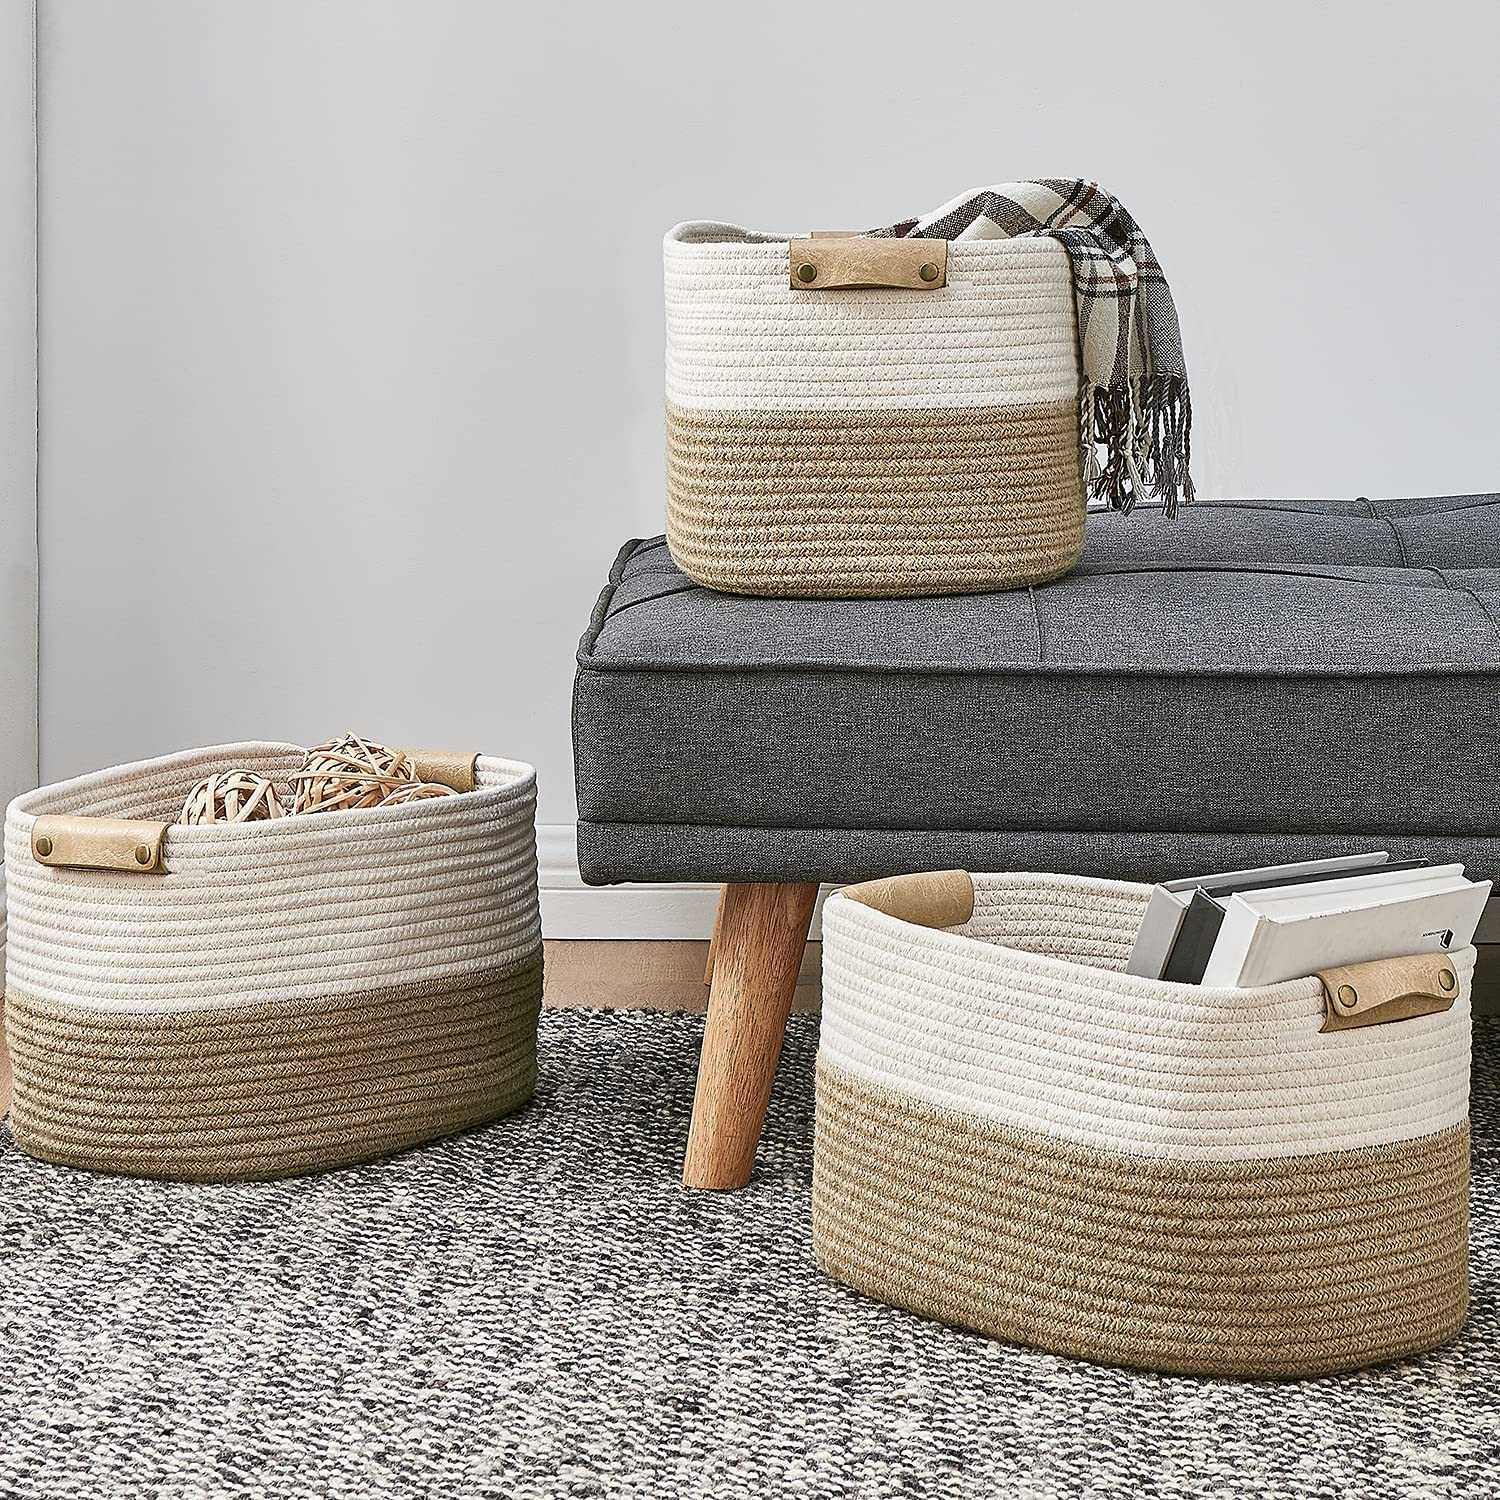 Discount is also underway Truly Lou Cotton Rope Storage depot Basket Woven Decorative of 3 Set